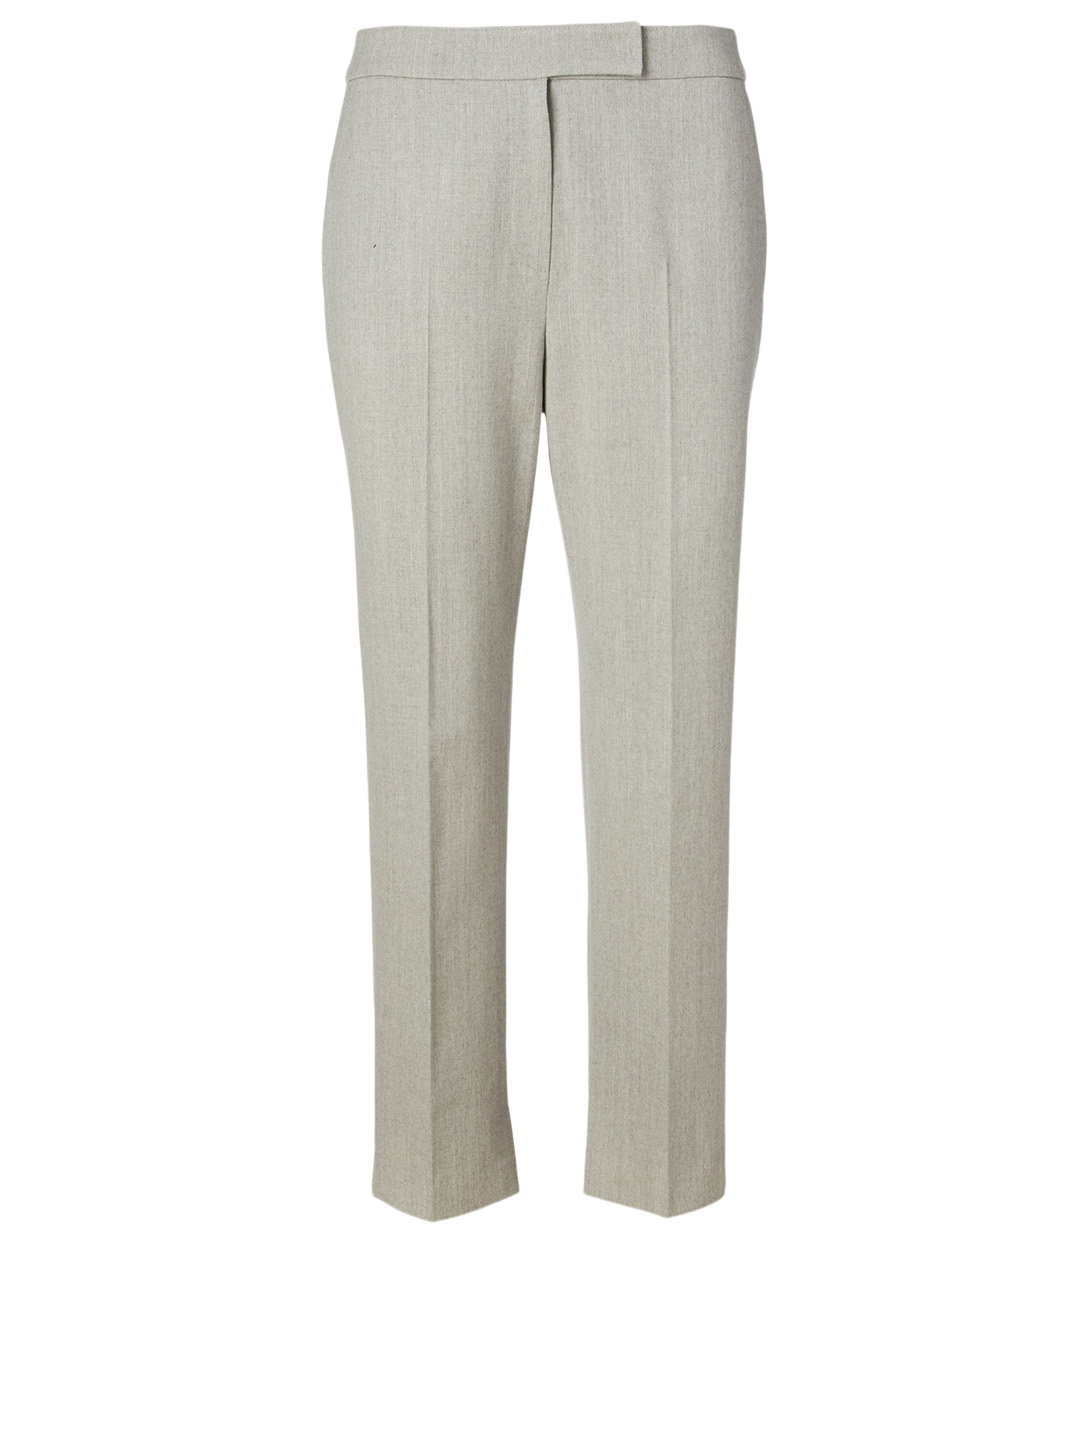 KUHO Wool And Cashmere Pants Women's Grey